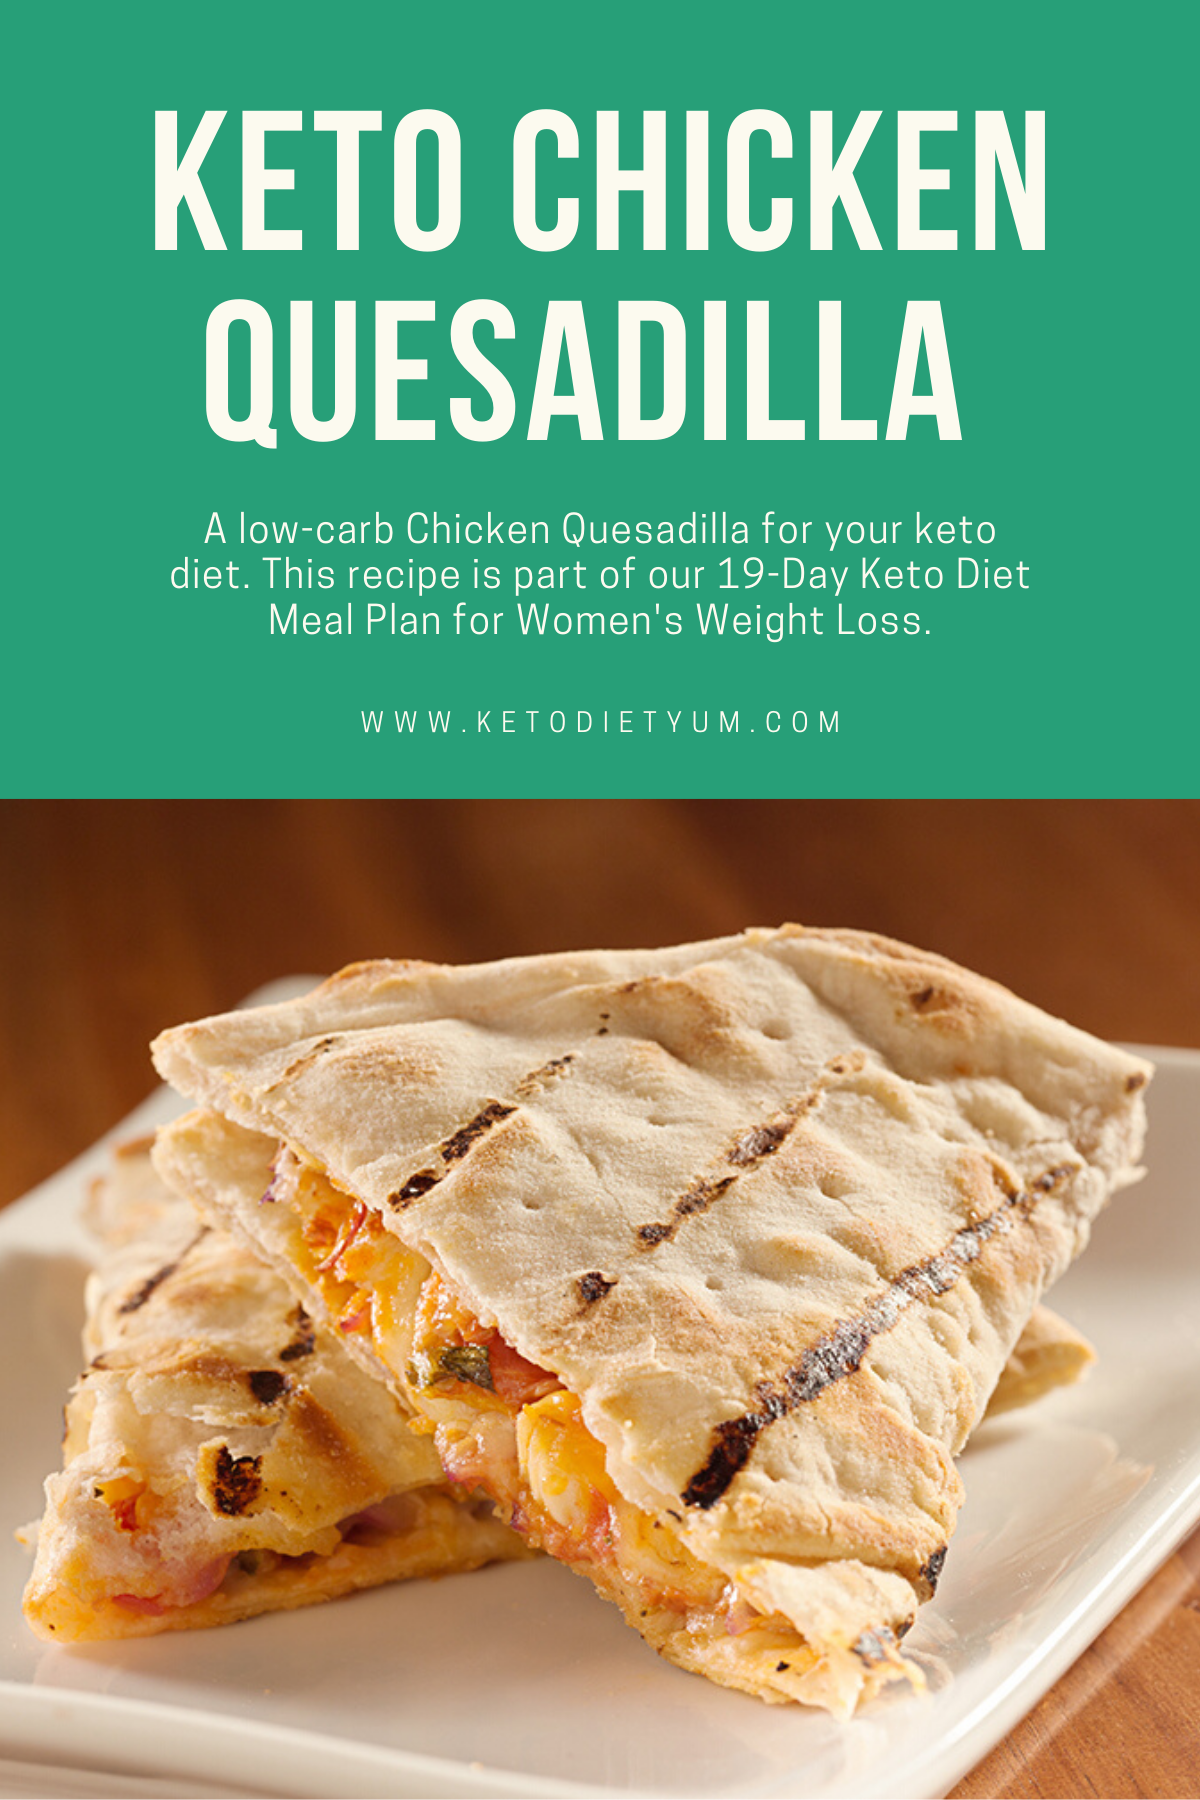 Oh my god! This low-carb Keto Chicken Quesadilla is one of my new favorite dinners. A creamy, delicious dinner you'll be sure to love! #ketodiet #ketorecipes #lowcarbrecipes